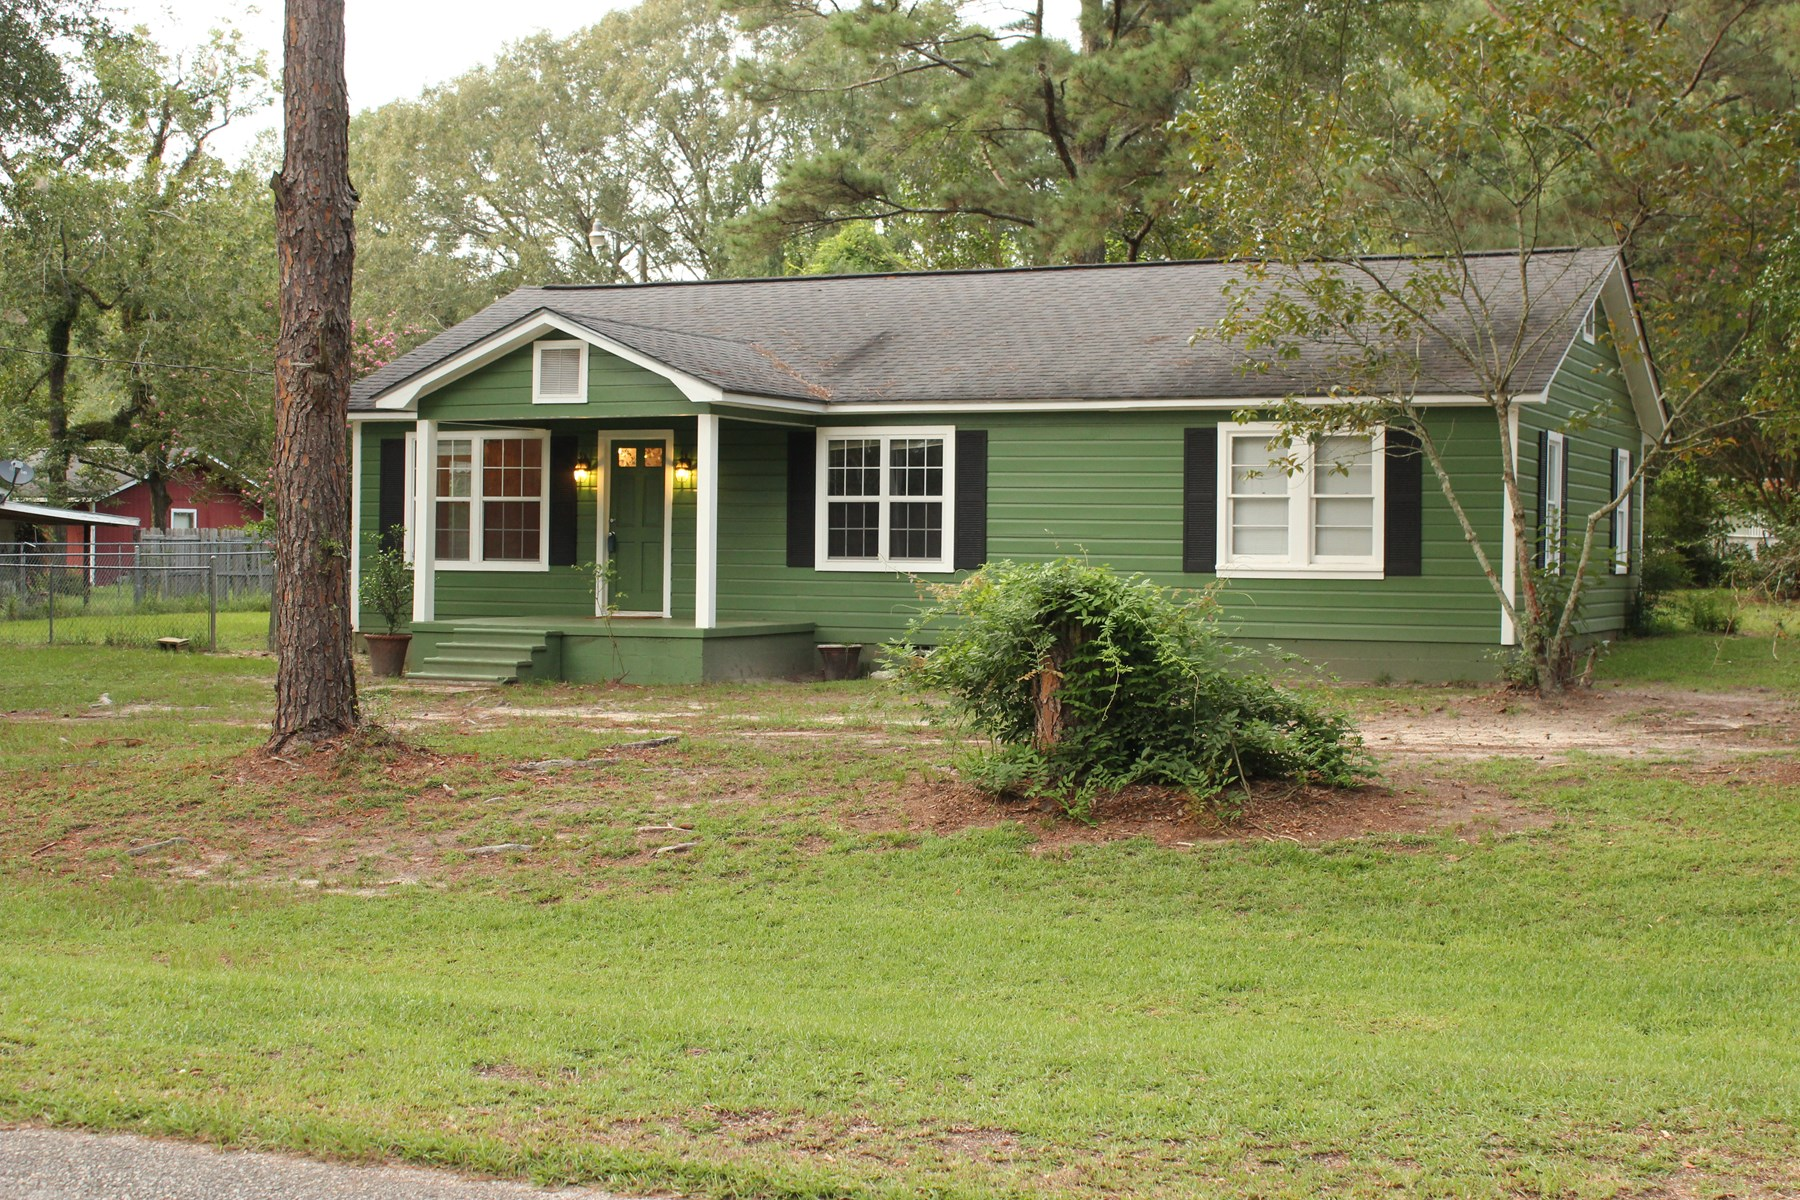 Country Home For Sale in Dale County Alabama